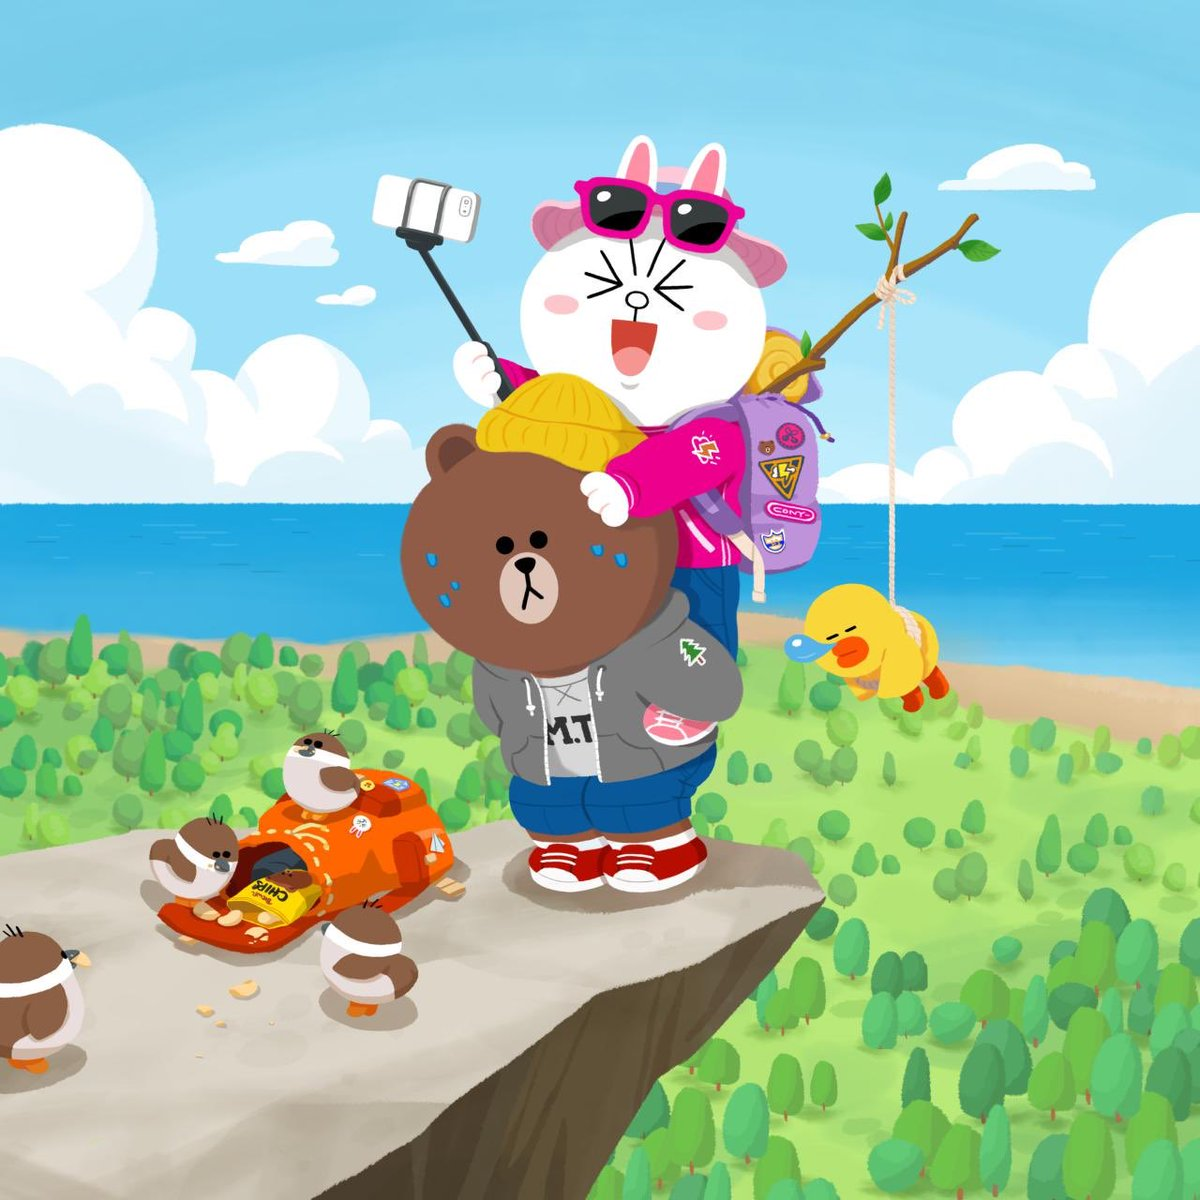 Selfie Level : Expert  #extreme #selfie #getting #sweaty #BROWN #CONY #SALLY #LINEFRIENDS<br>http://pic.twitter.com/pj50IW9qg7